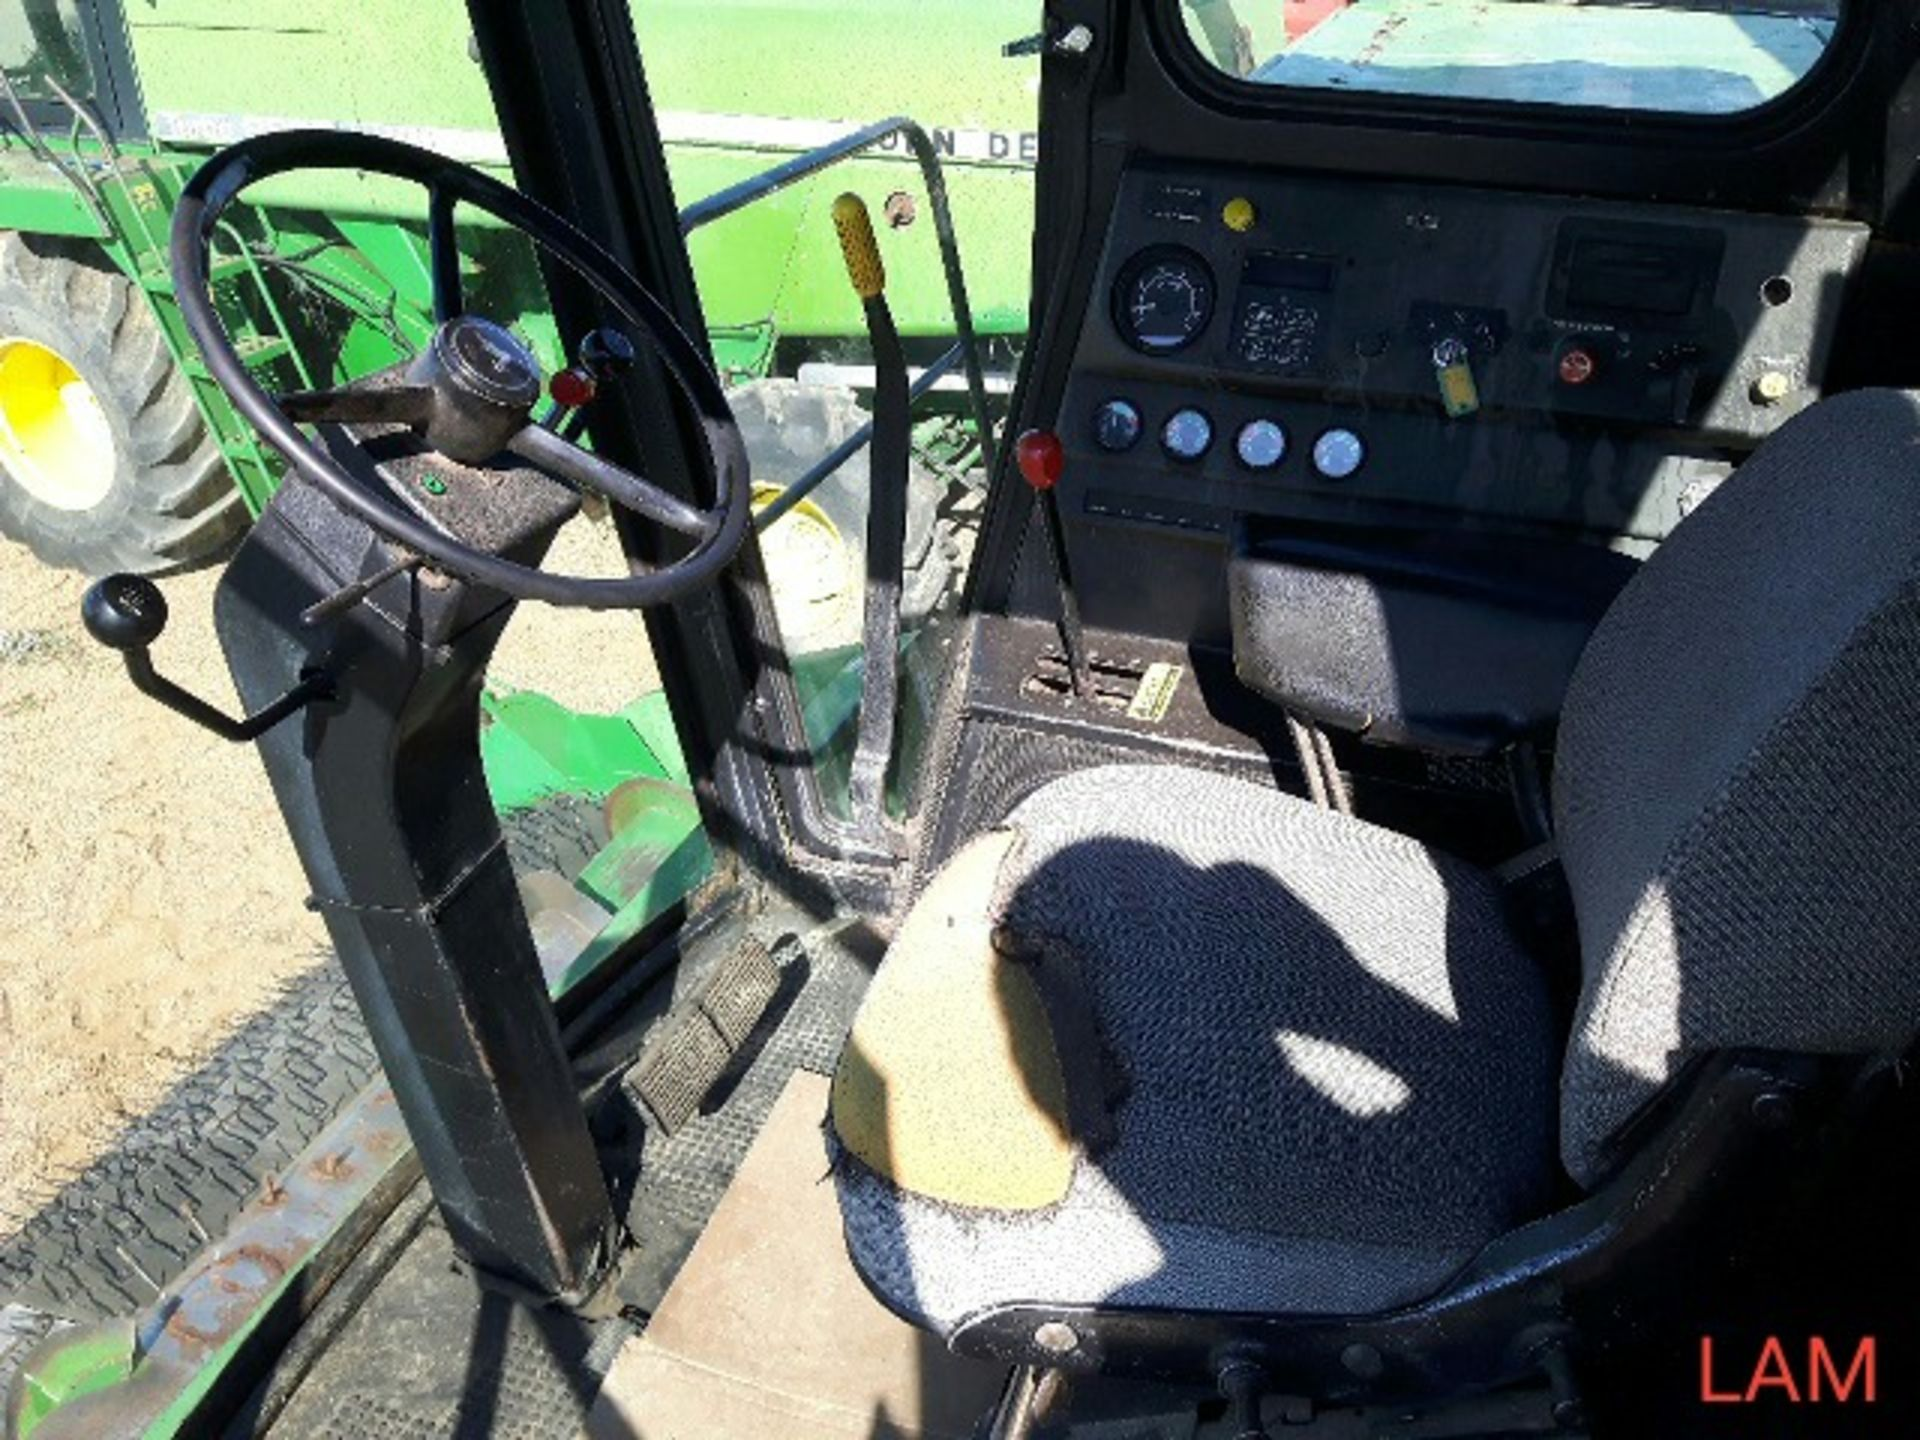 8820 JD Combine Hydrostatic Drive, 3315hrs, c/w New Headliner and padding, to arrive beginning of - Image 11 of 14